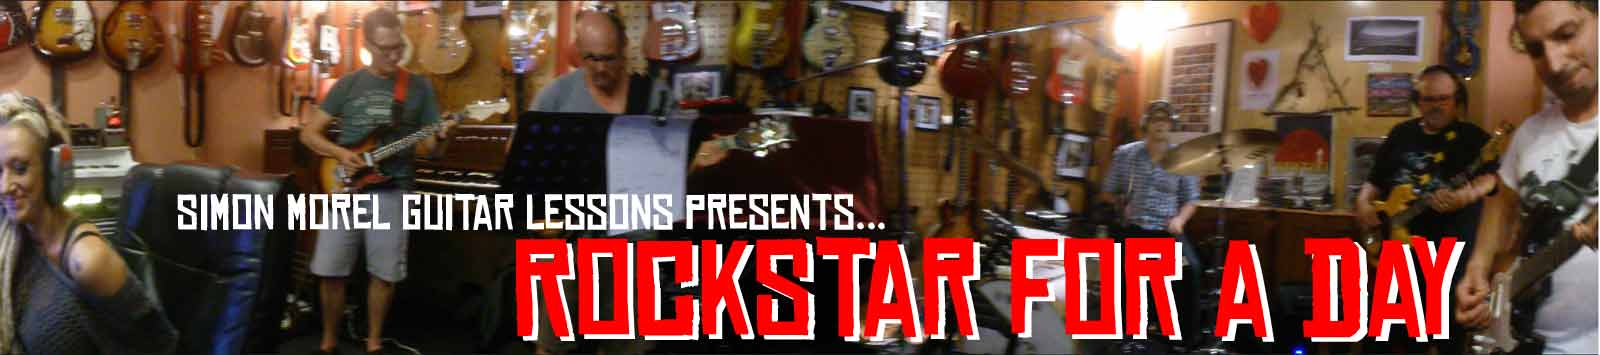 ROCKSTAR-FOR-A-DAY-BANNER